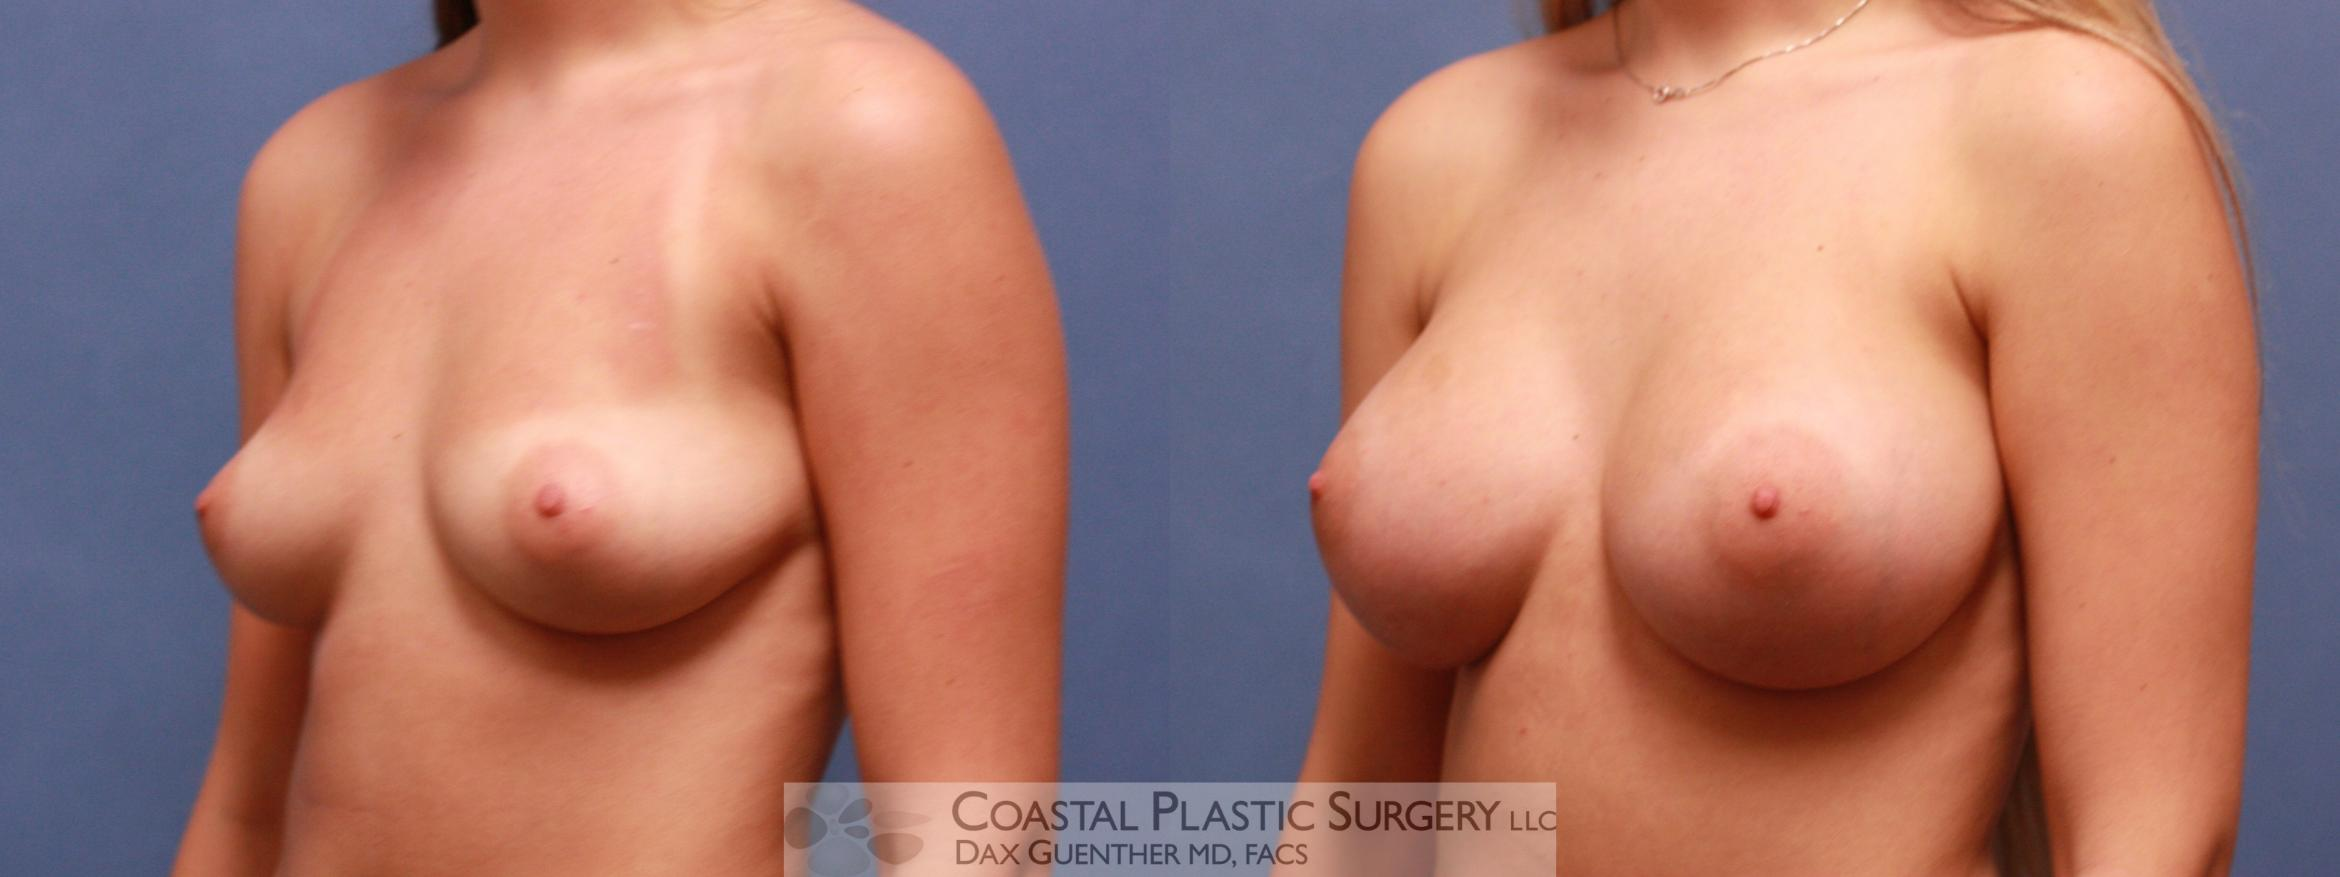 Breast Augmentation Before & After Photo | Hingham, MA | Dax Guenther, MD: Coastal Plastic Surgery